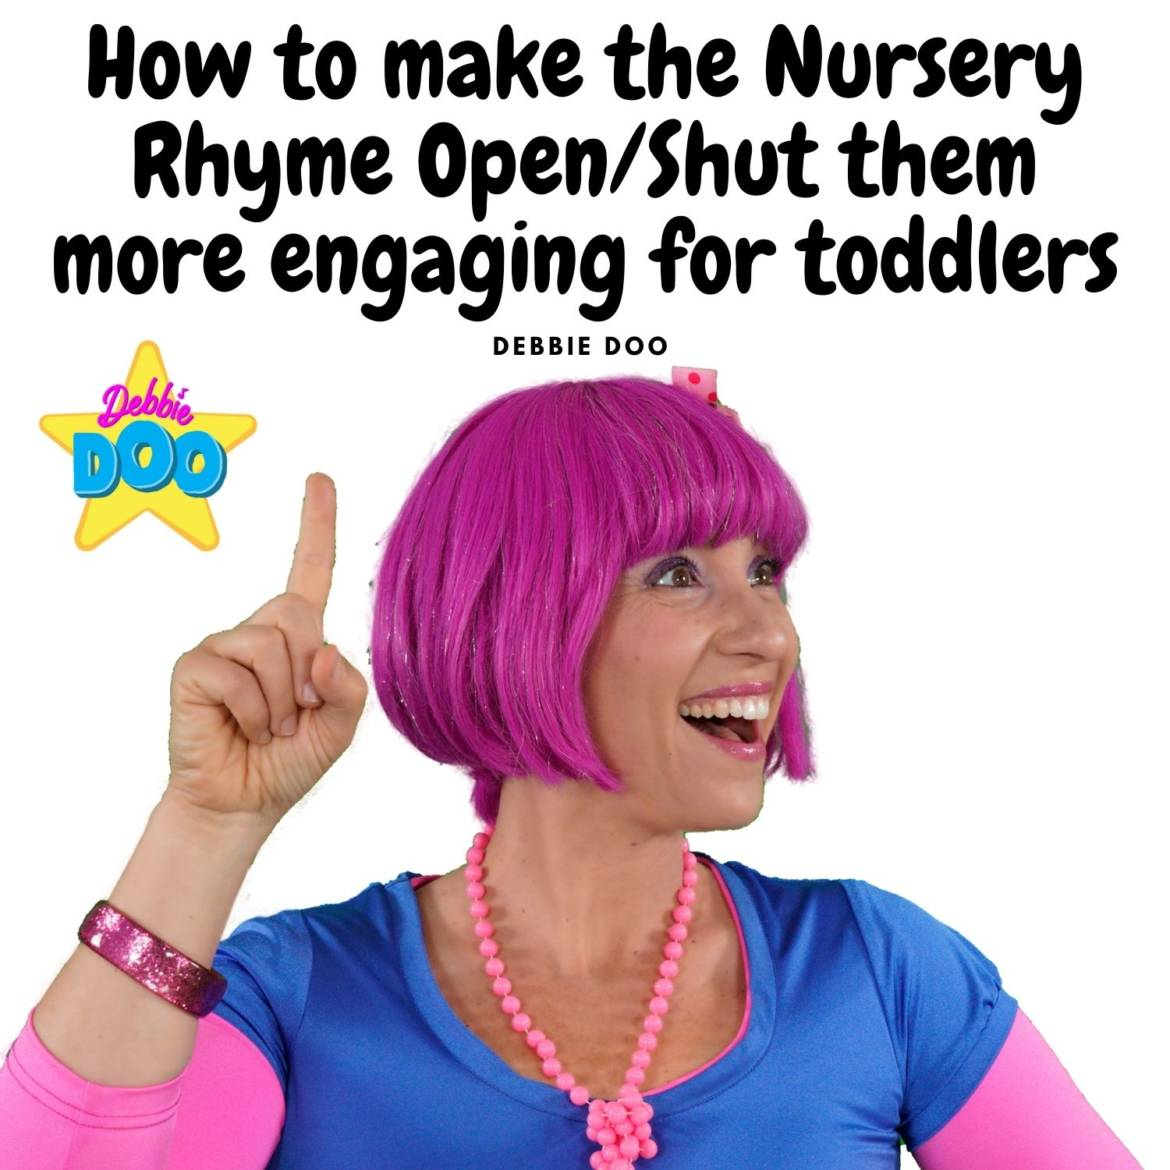 How to make Open/Shut Them nursery rhymes for toddlers more engaging (is that even possible?) Debbie Doo